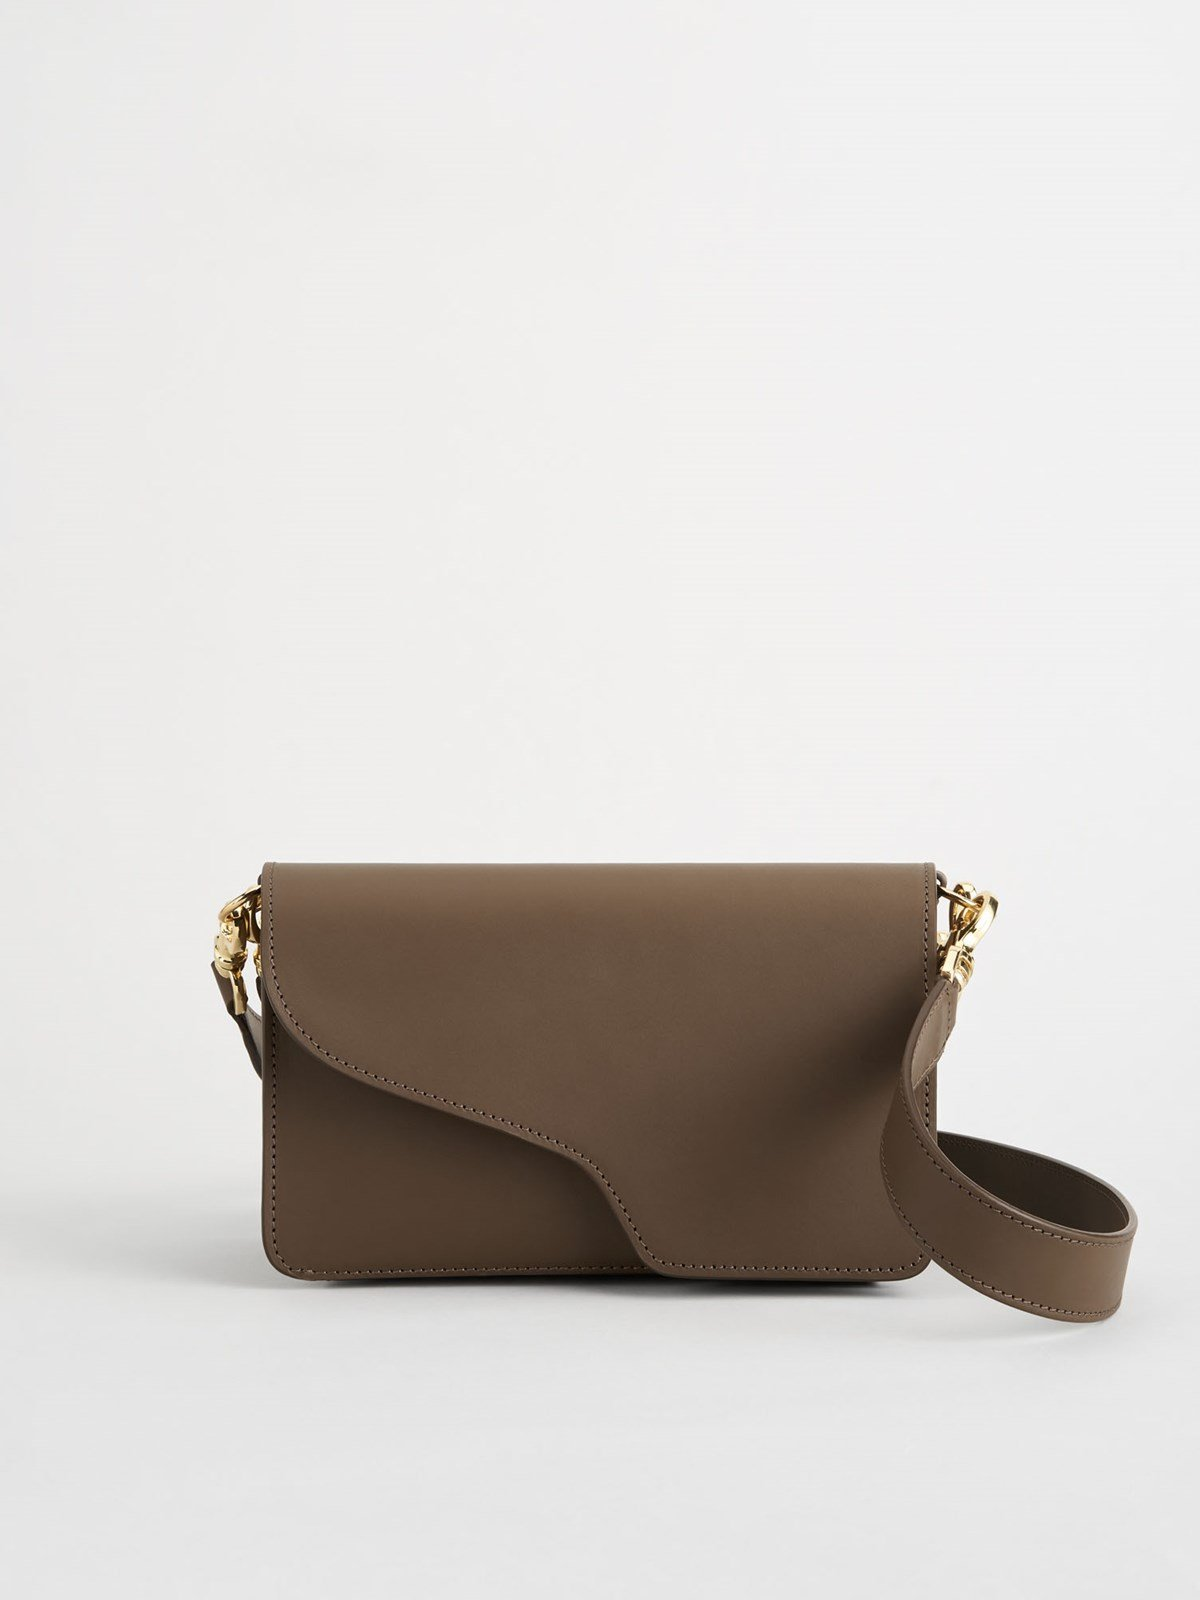 Assisi Khaki Brown Baguette Bag